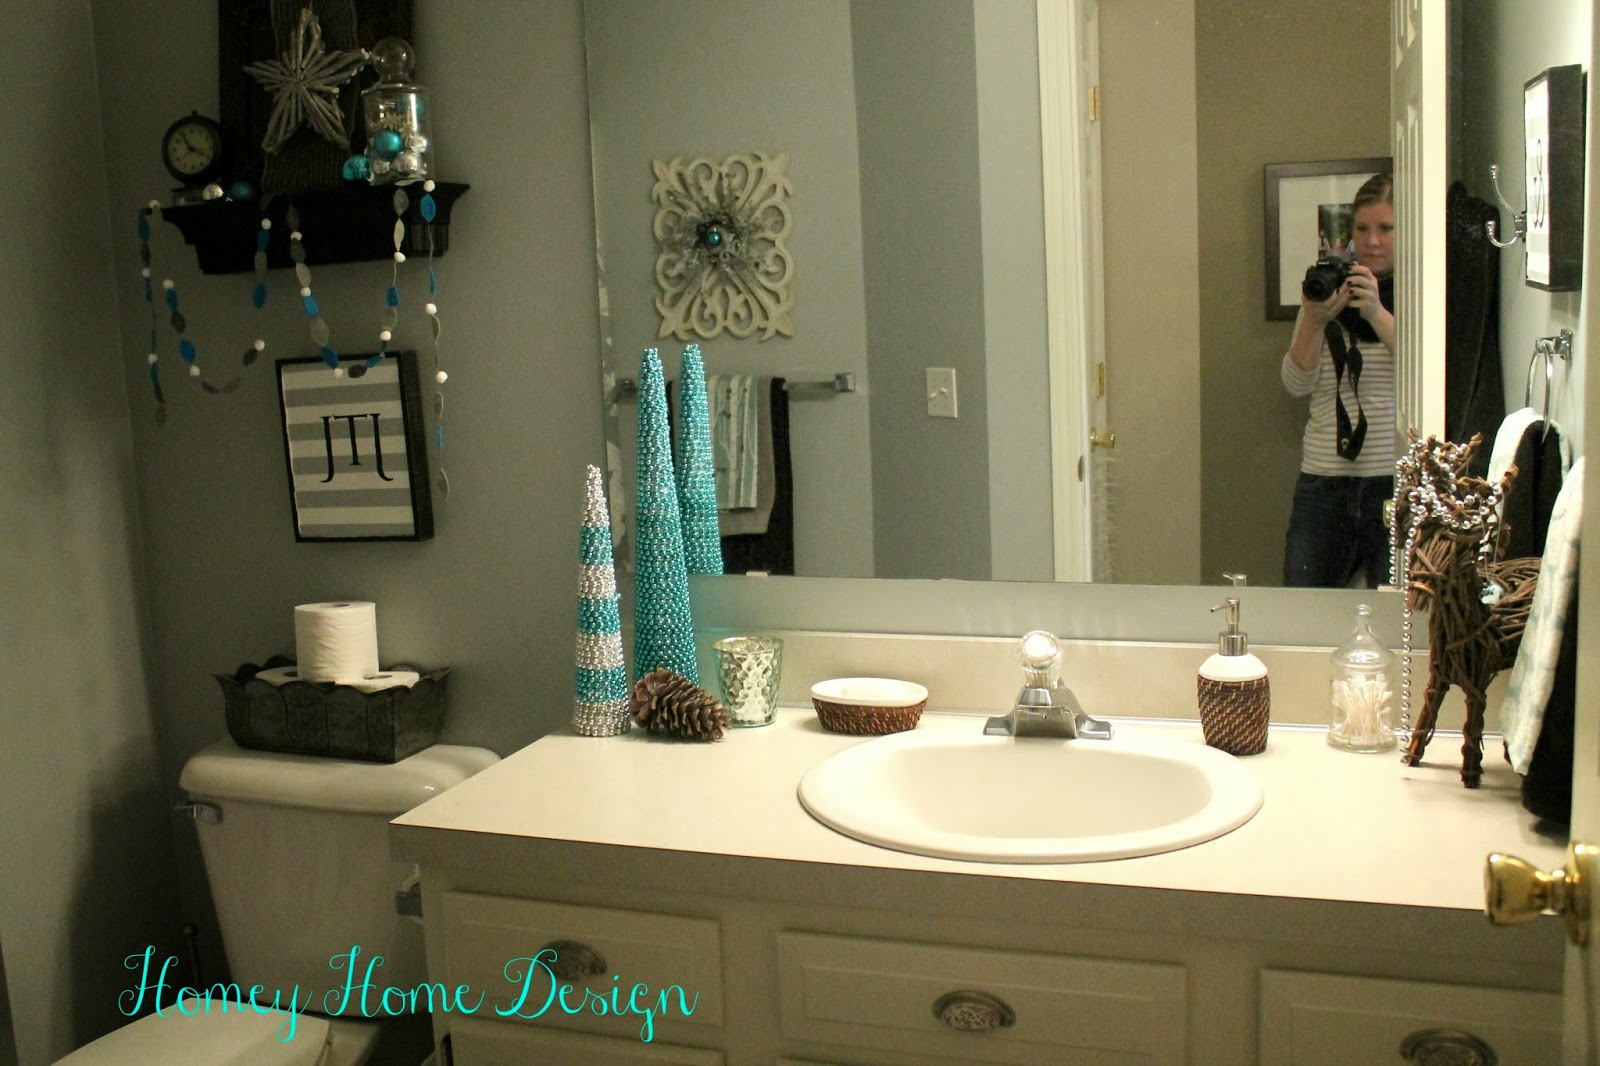 Homey home design bathroom christmas ideas for Restroom decor ideas